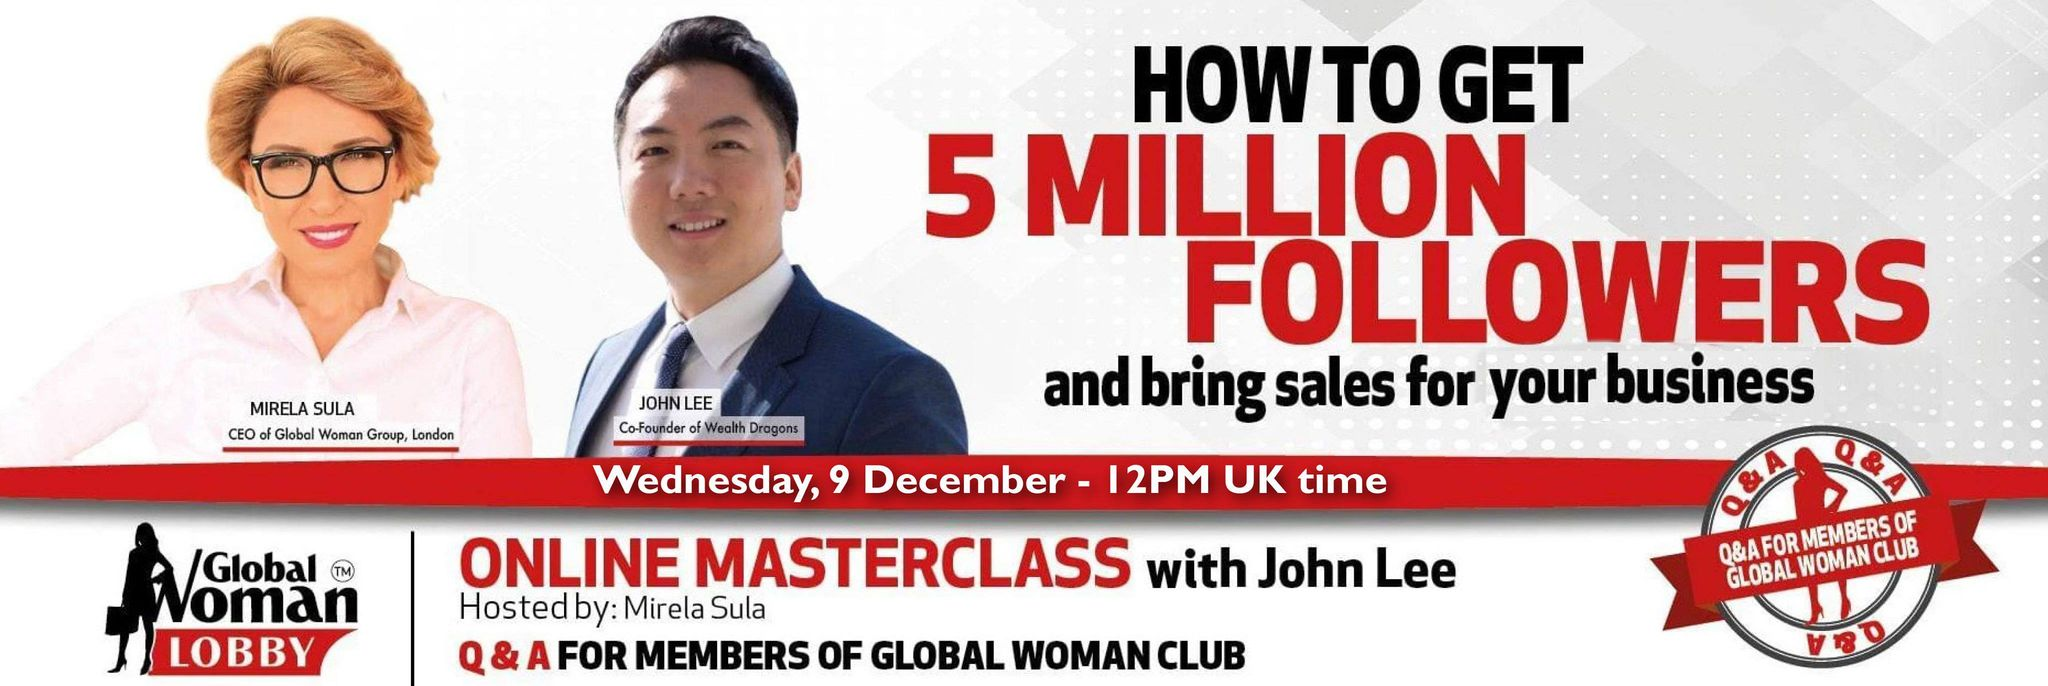 Online Masterclass with John Lee